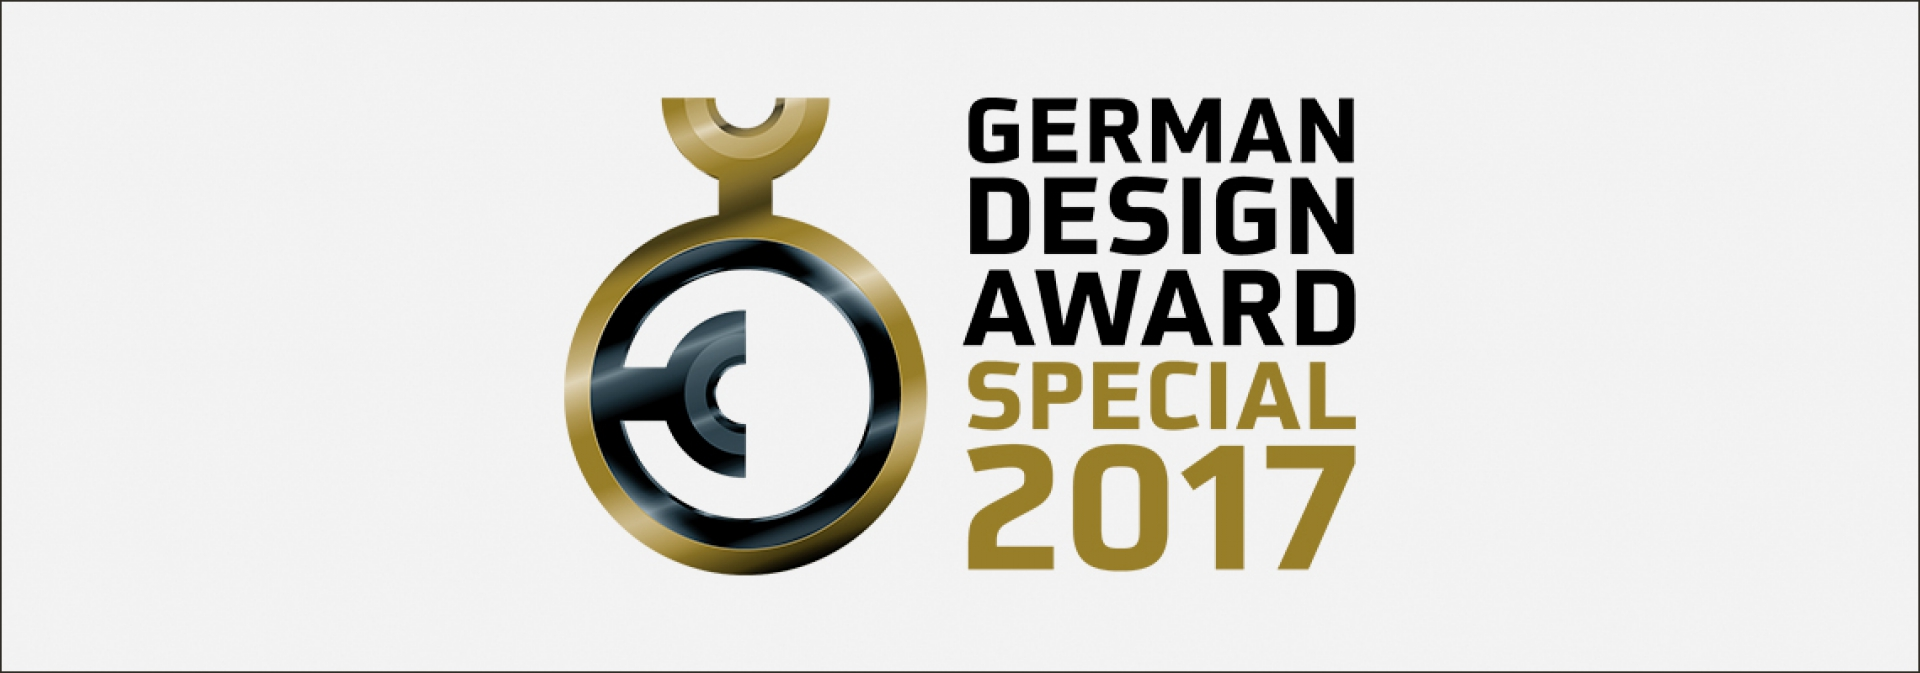 german design award 2017 special mention pullman. Black Bedroom Furniture Sets. Home Design Ideas